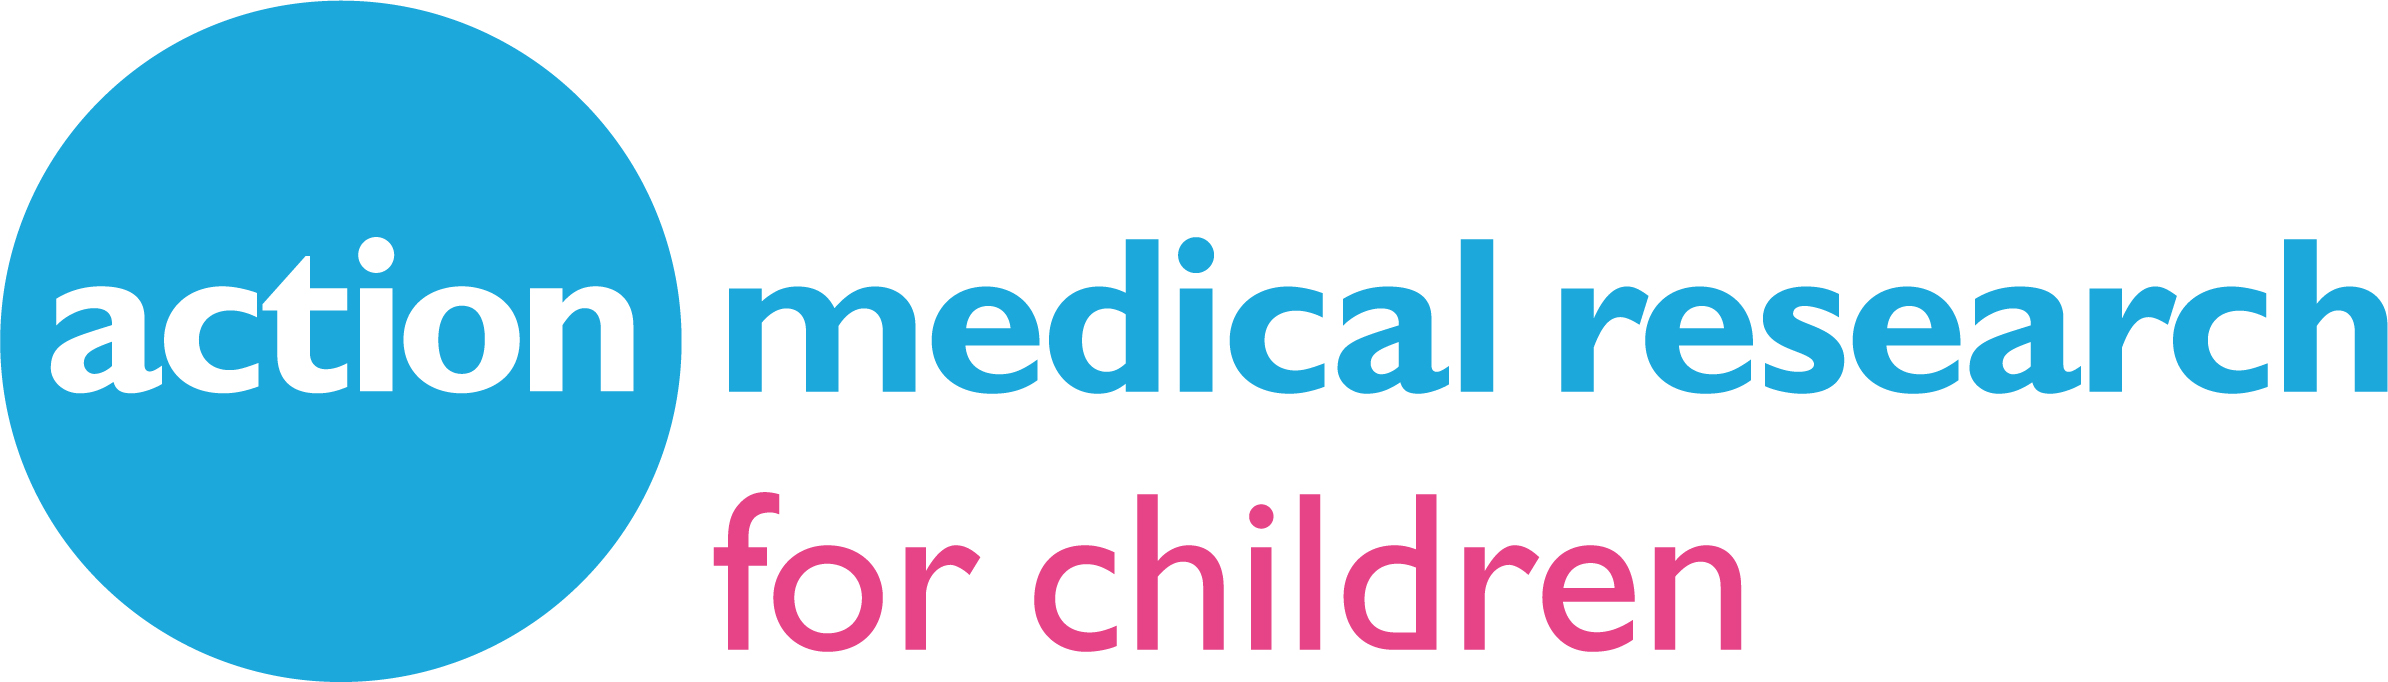 Action Medical Research-logo